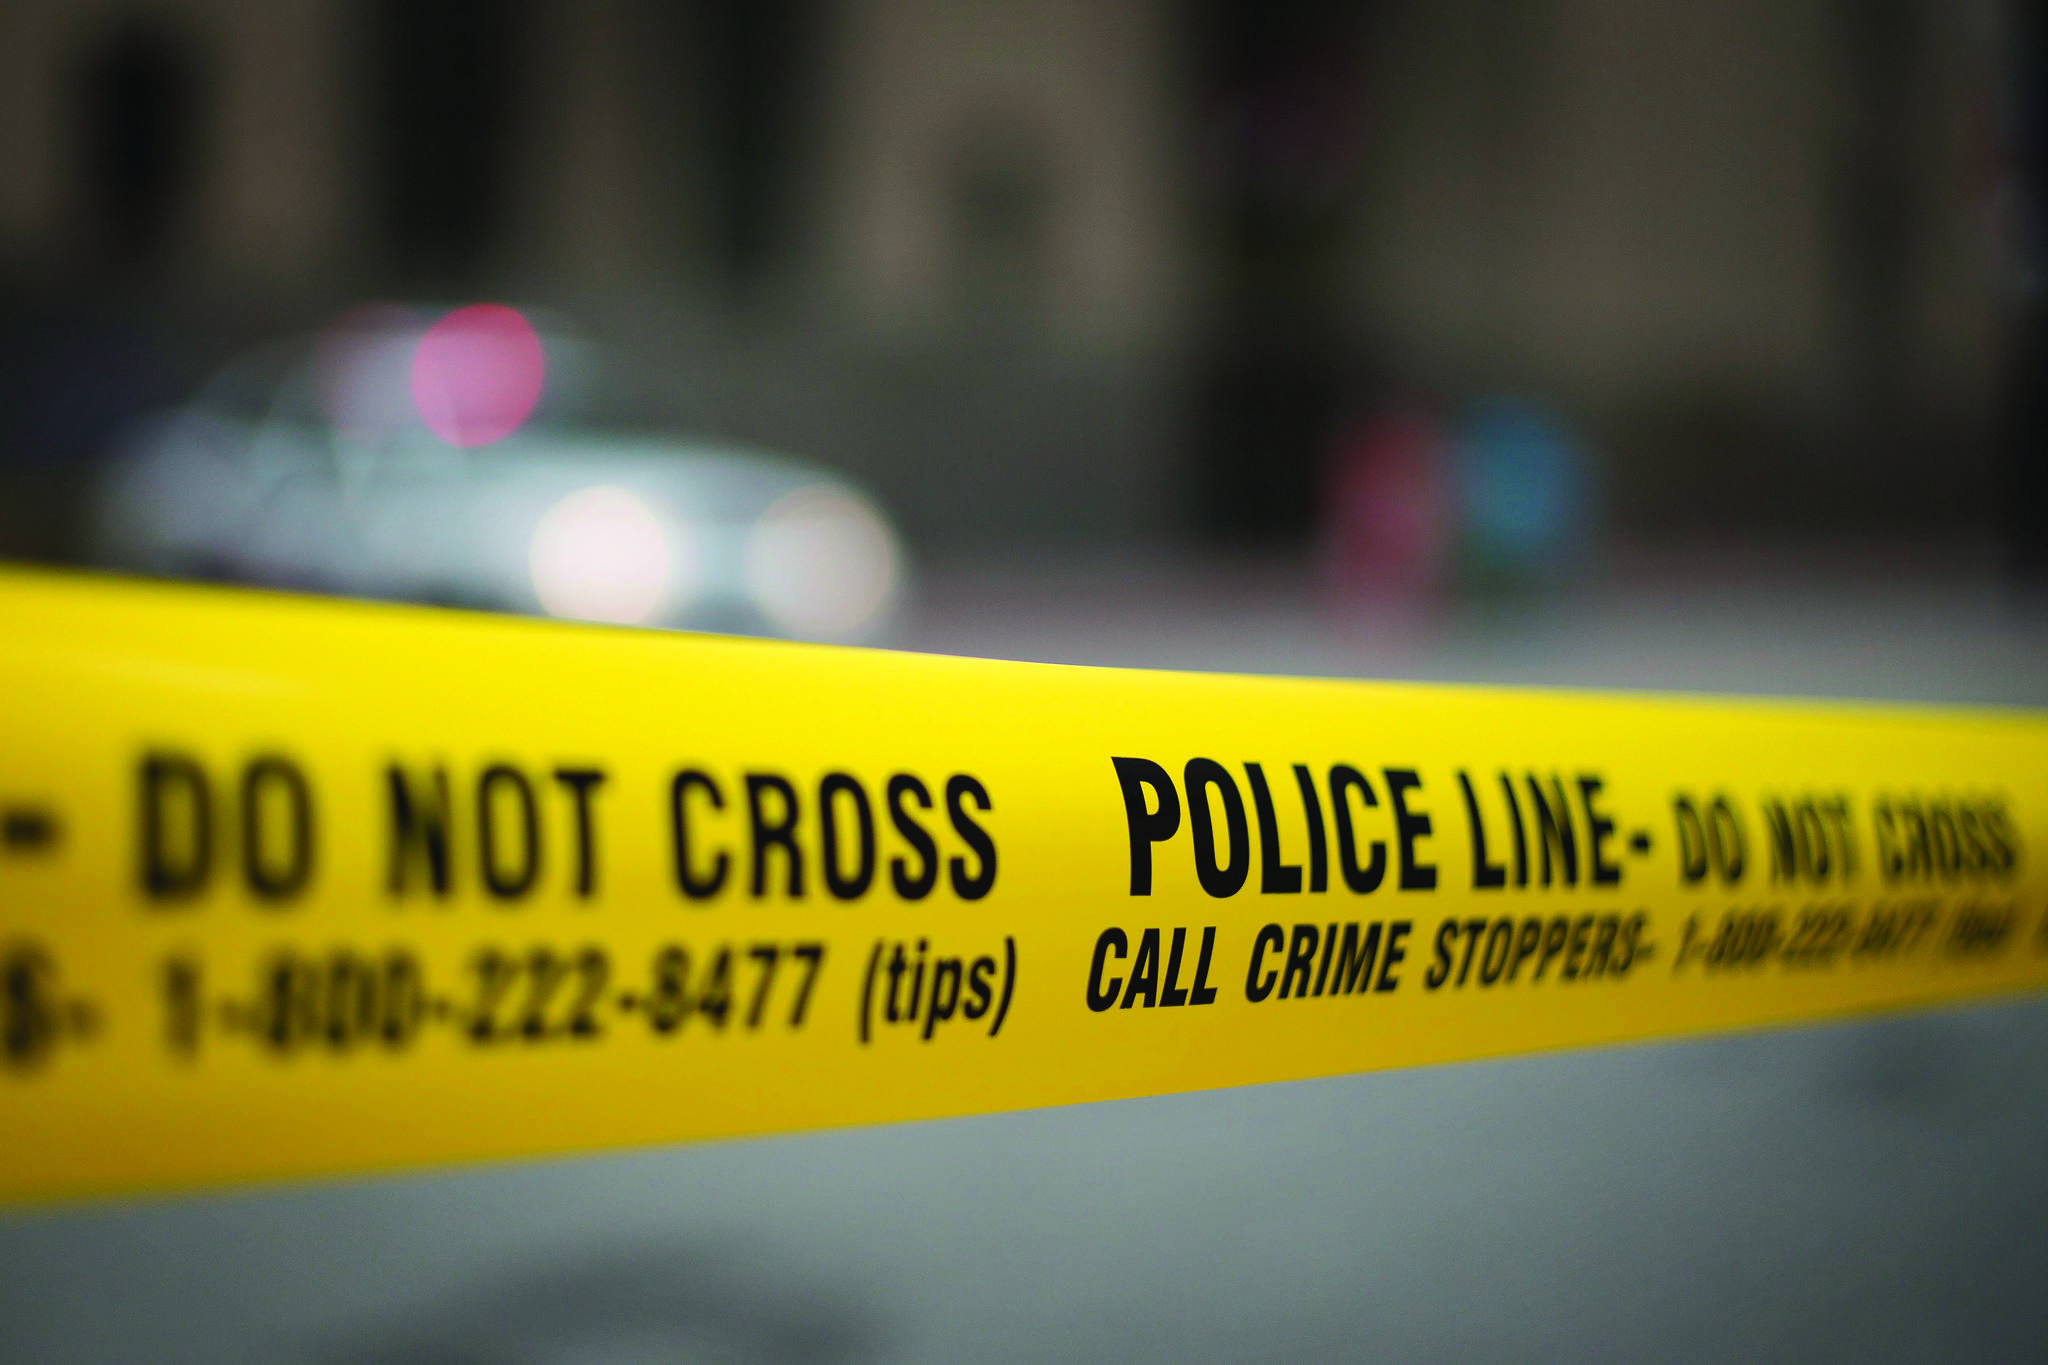 Anyone with information on recent machete attacks should contact the VPD's Major Crimes Section at 604-717-2541 or Crime Stoppers at 1-800-222-8477. (File)